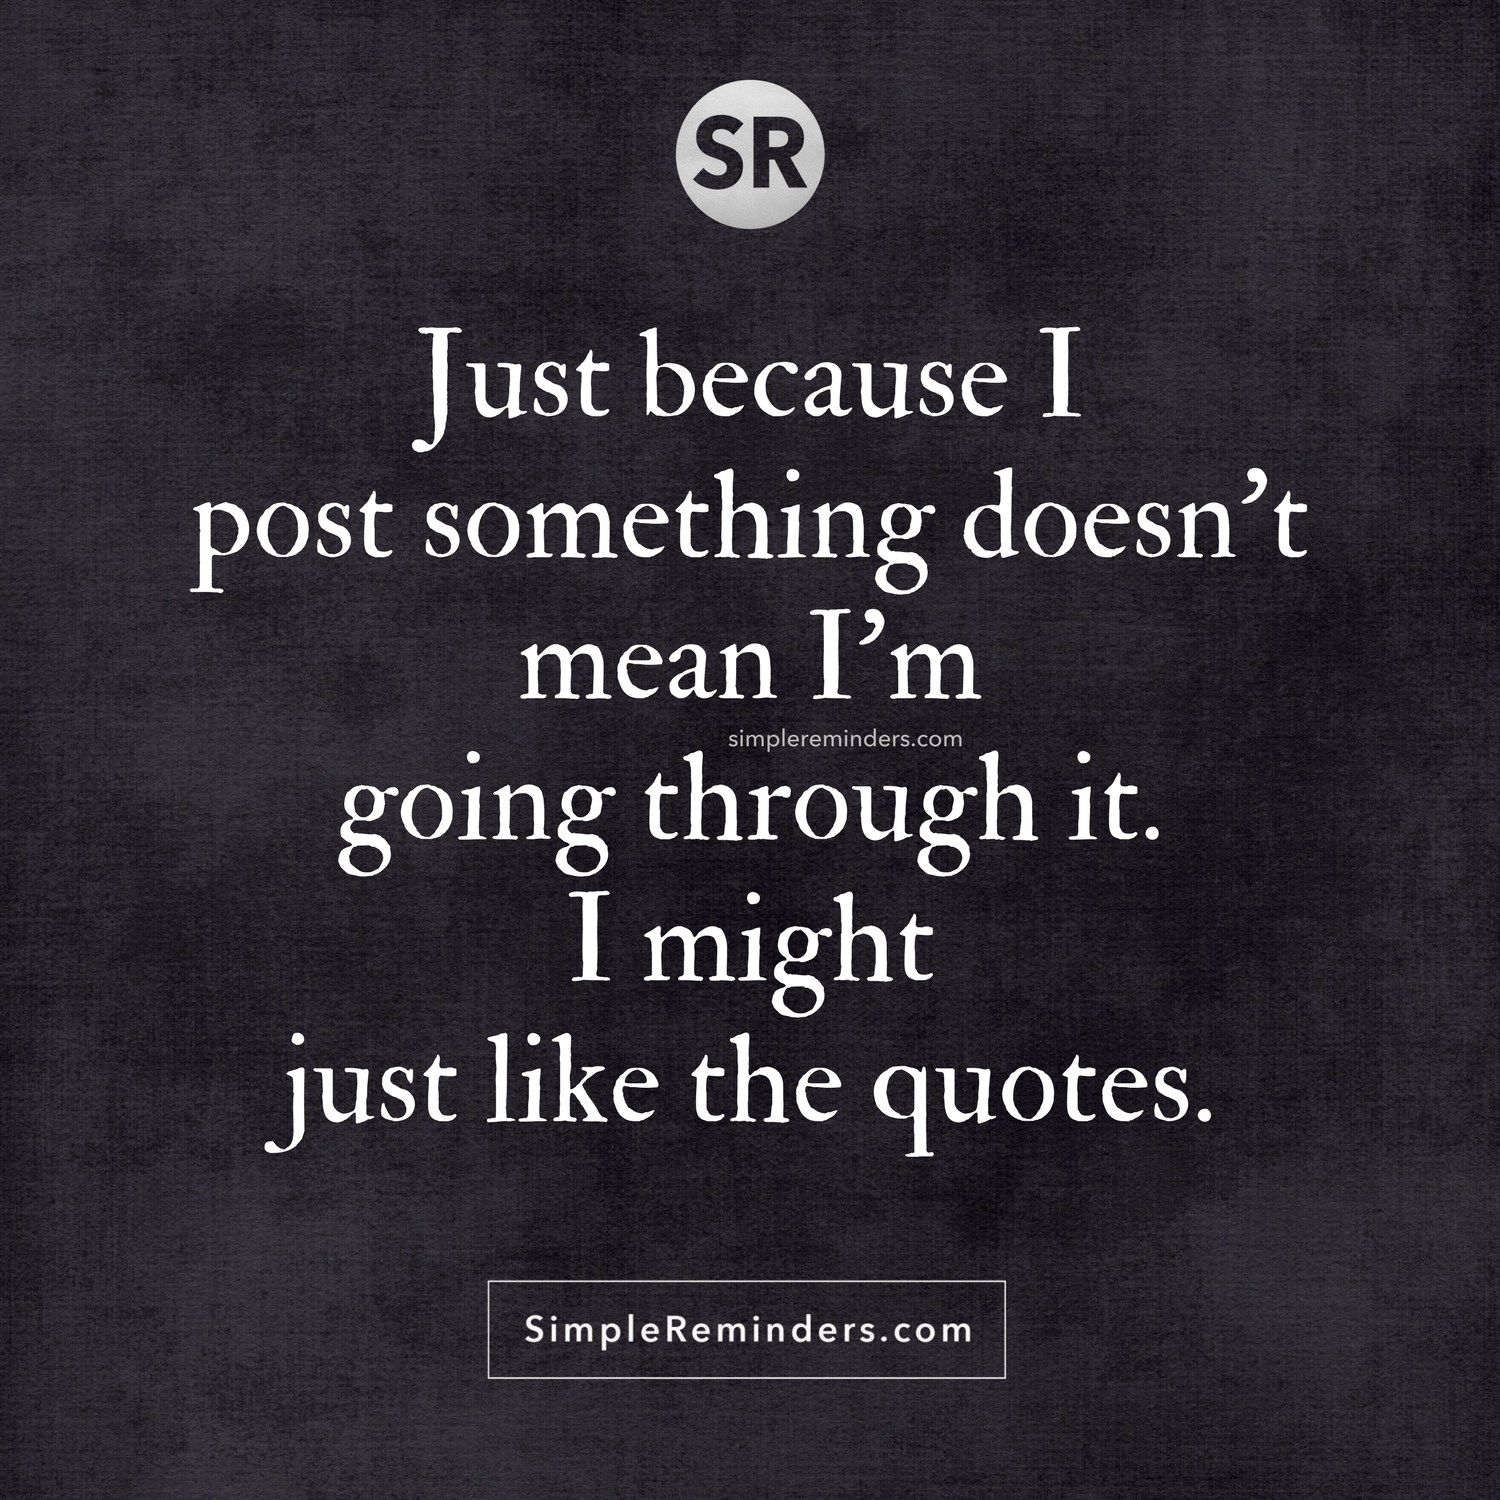 Quotes About Friendship Changing Just Because I Post Something Doesn't Mean I'm Going Through Iti